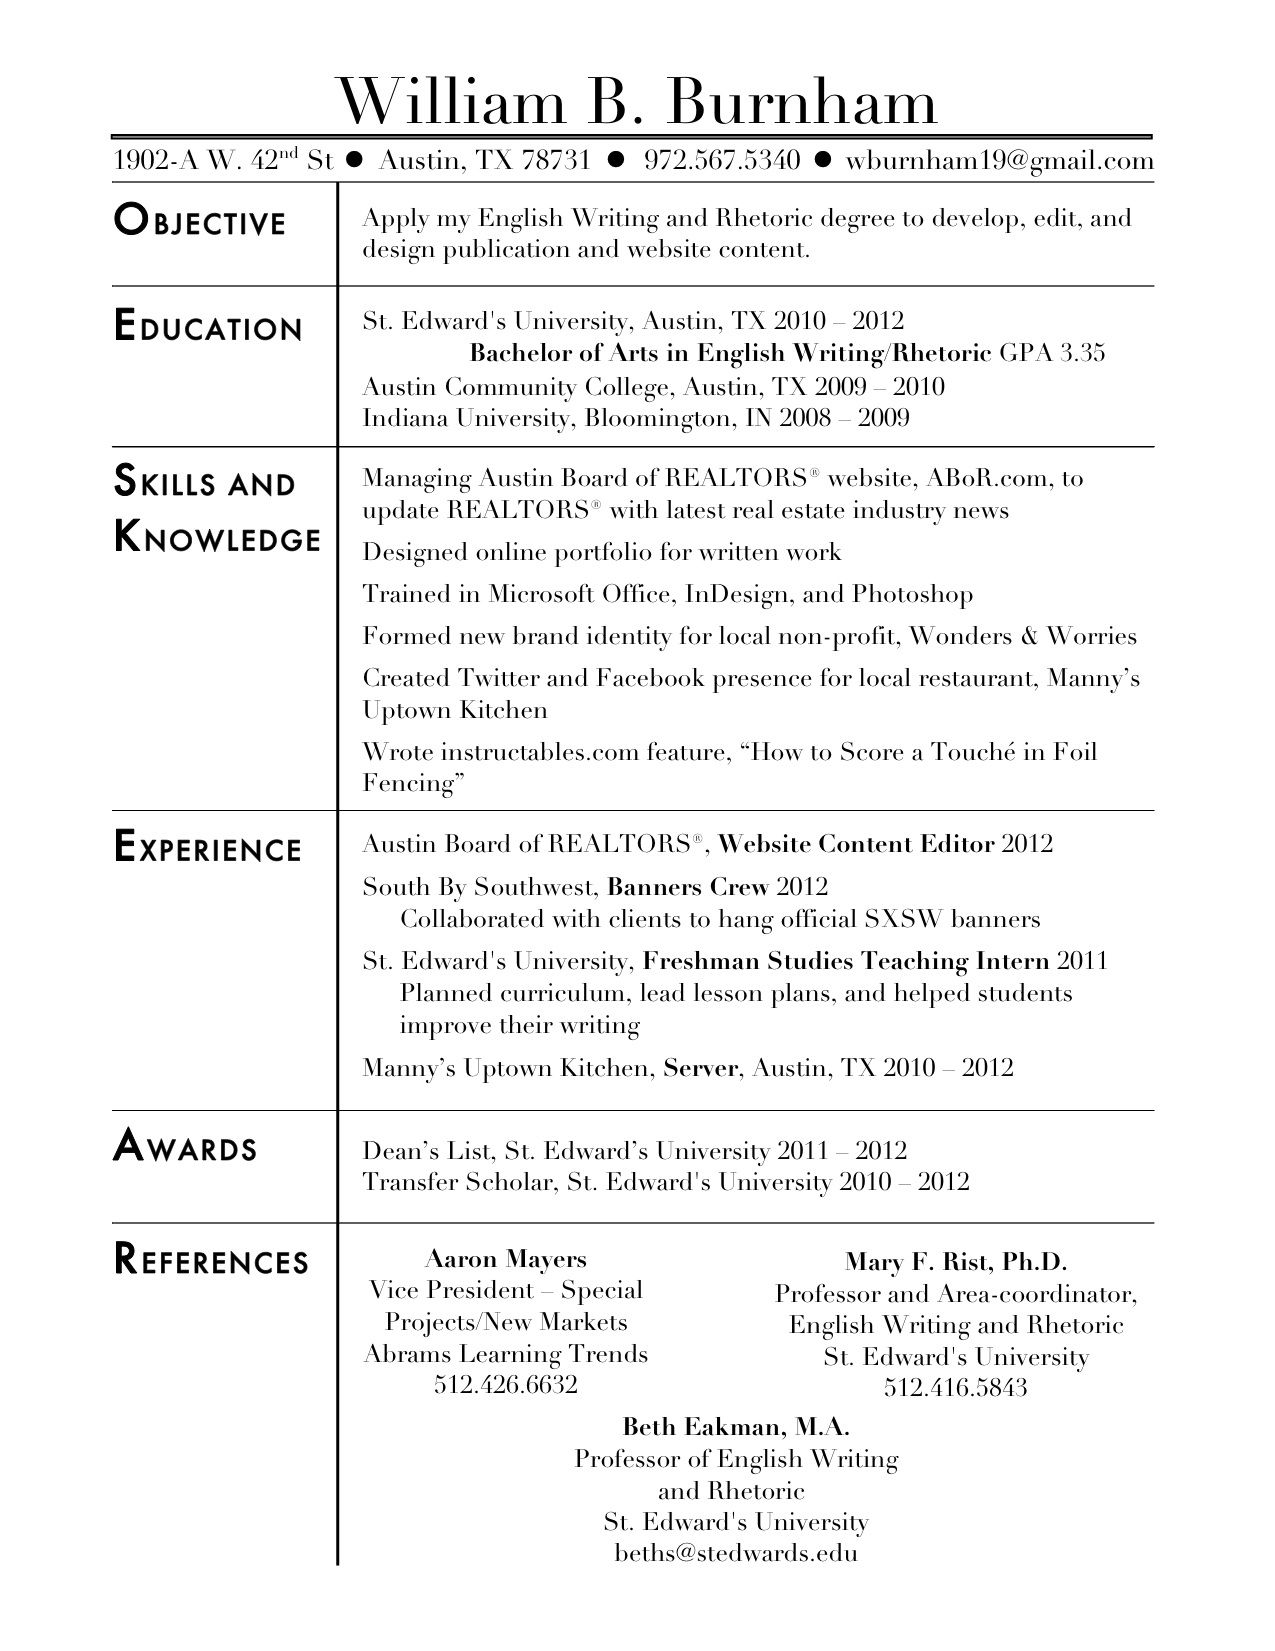 Superb 16 Social Work Resume Objective Examples Pertaining To Objective For Social Work Resume